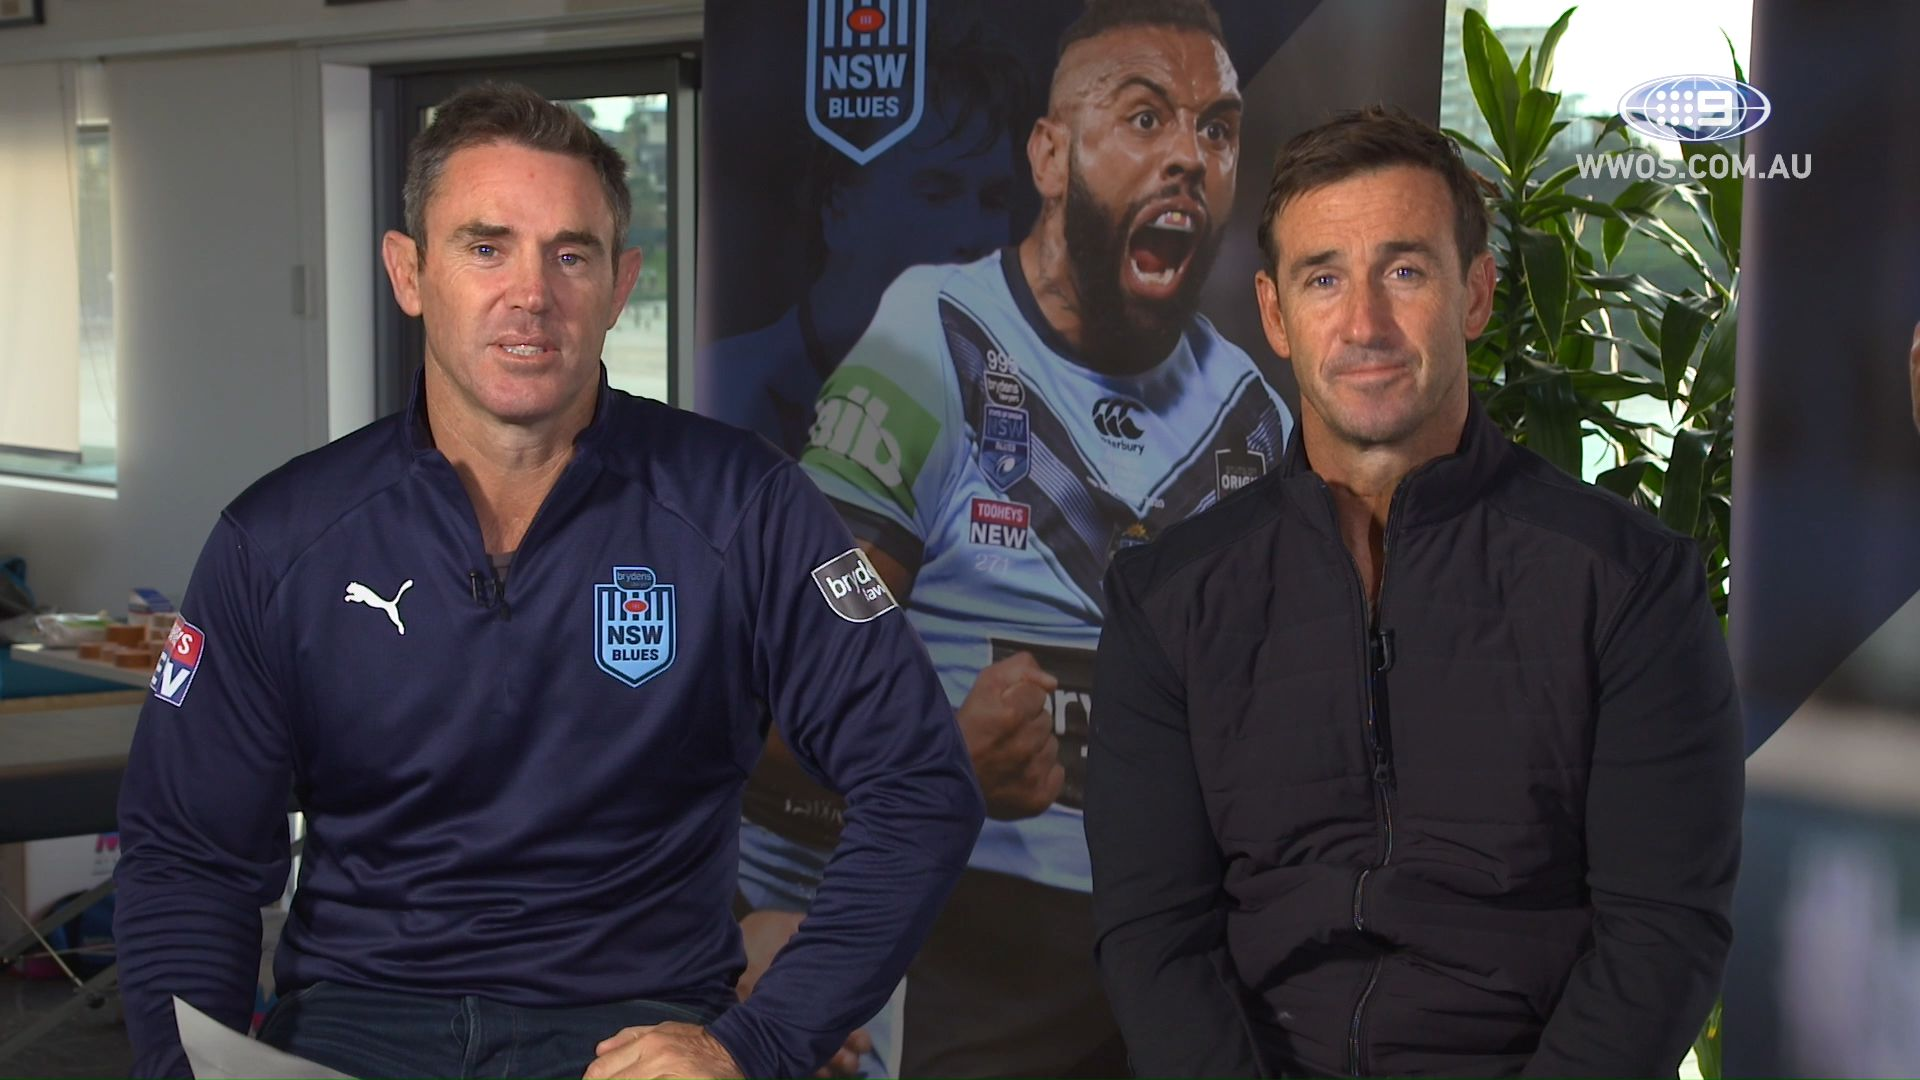 NRL Round 13 tips: Andrew Johns, Brad Fittler and Nine's experts give their predictions